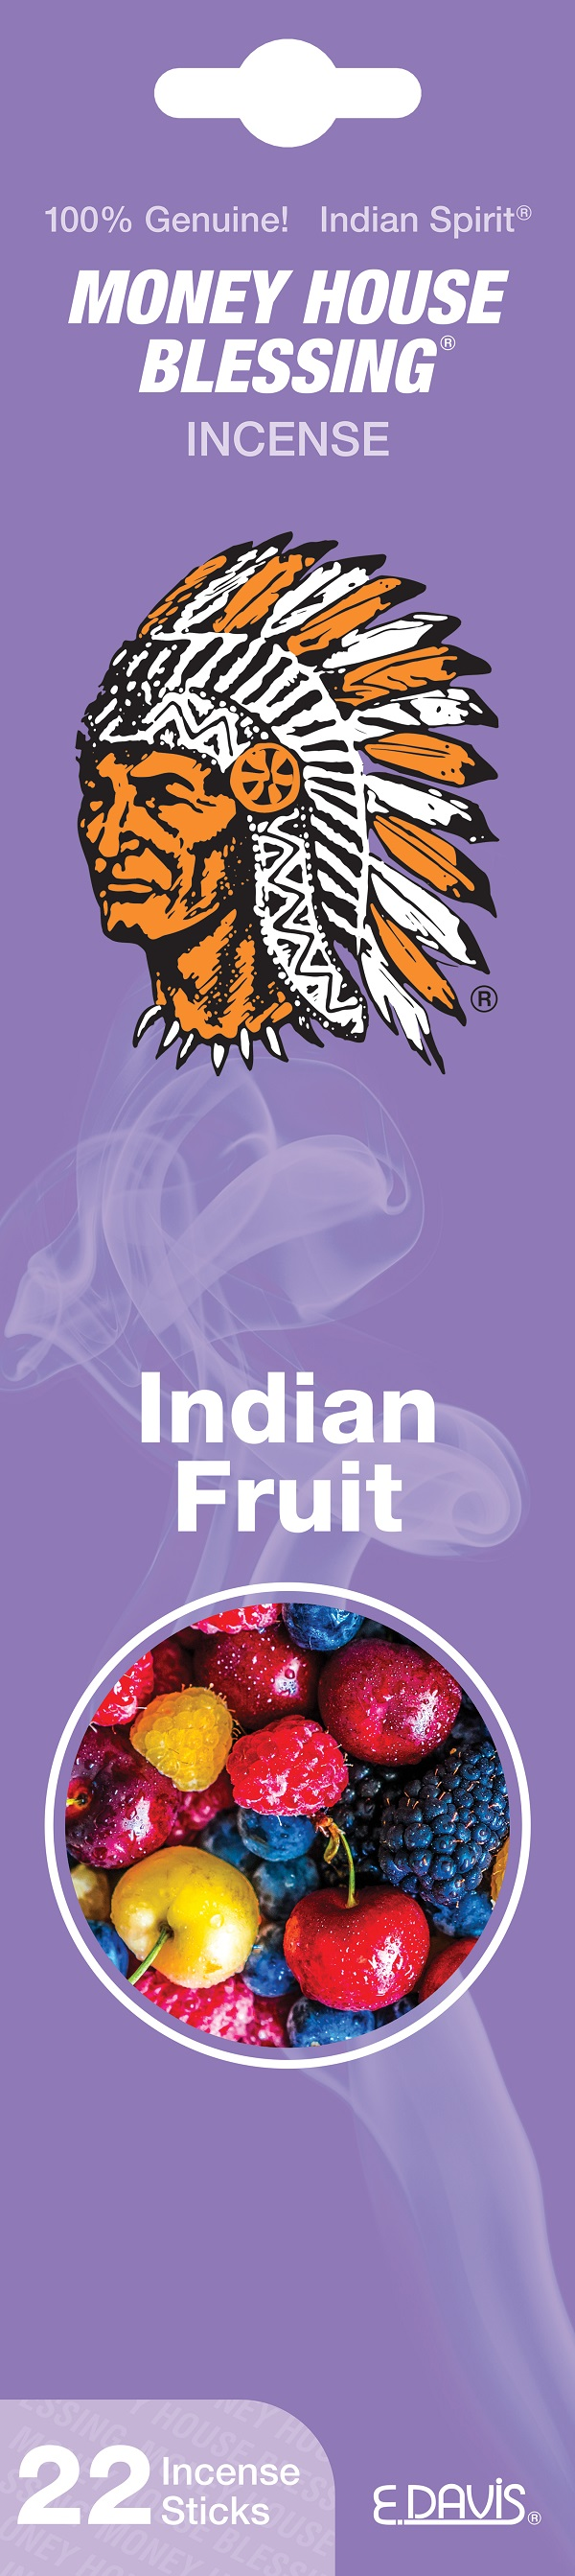 MONEY HOUSE BLESSING INCENSE 22'S *INDIAN FRUIT*